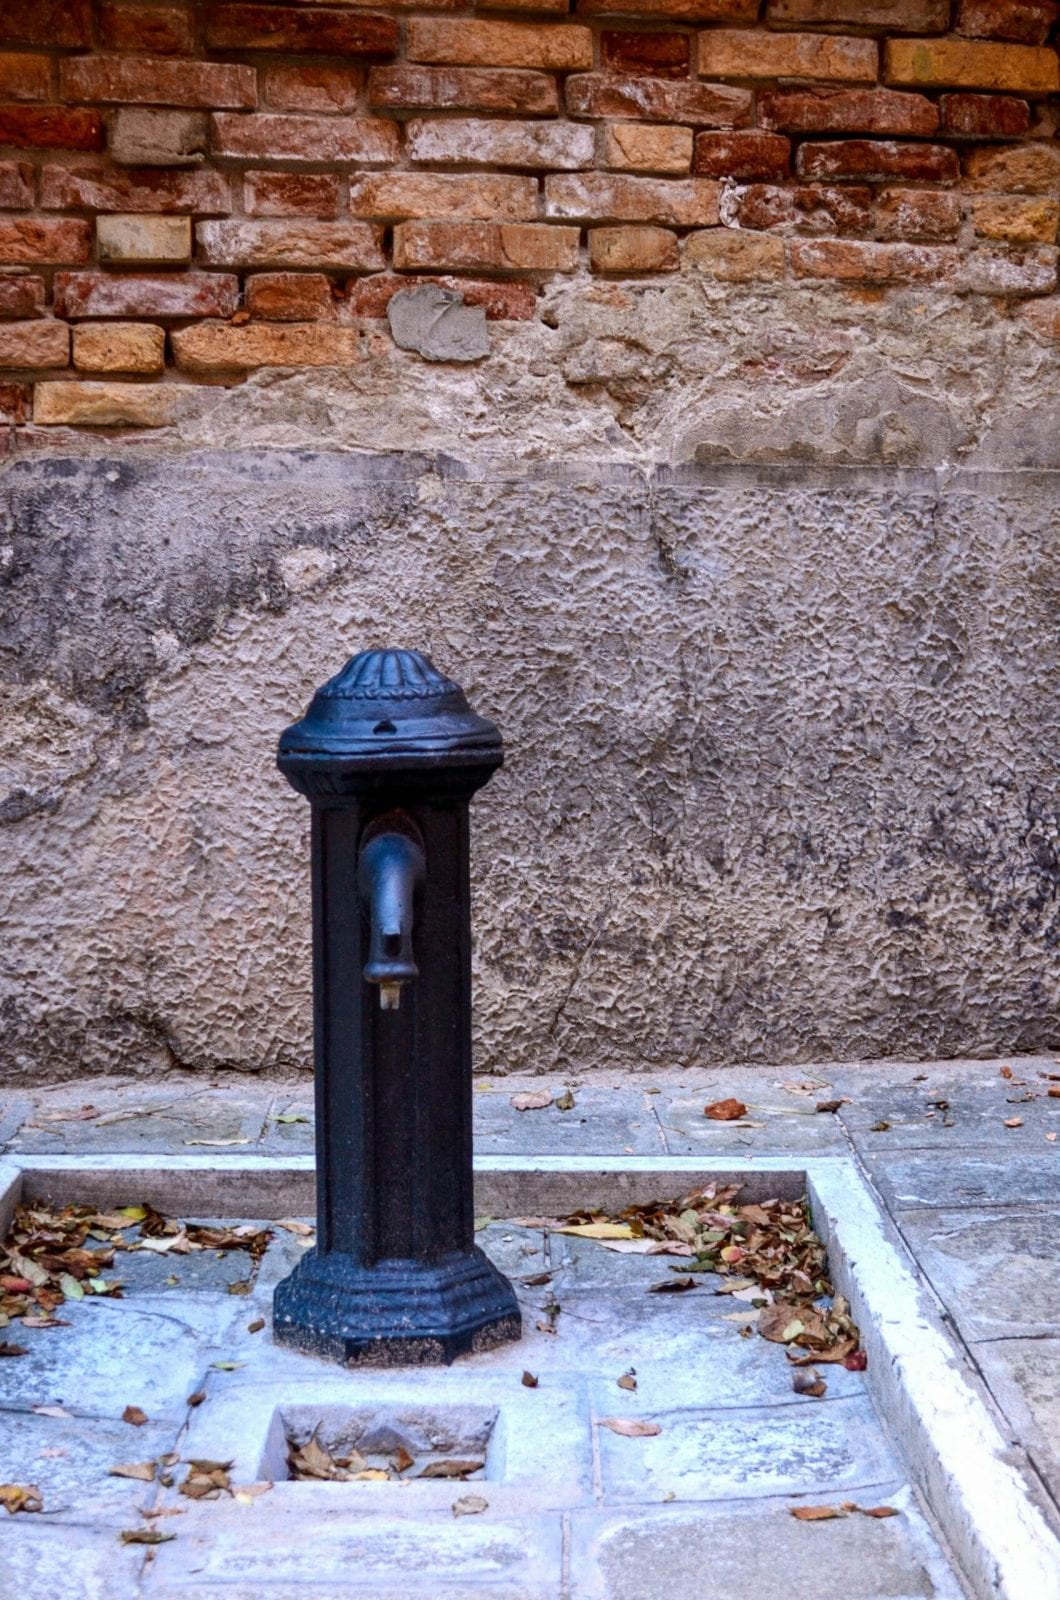 Rome Water source, Italy